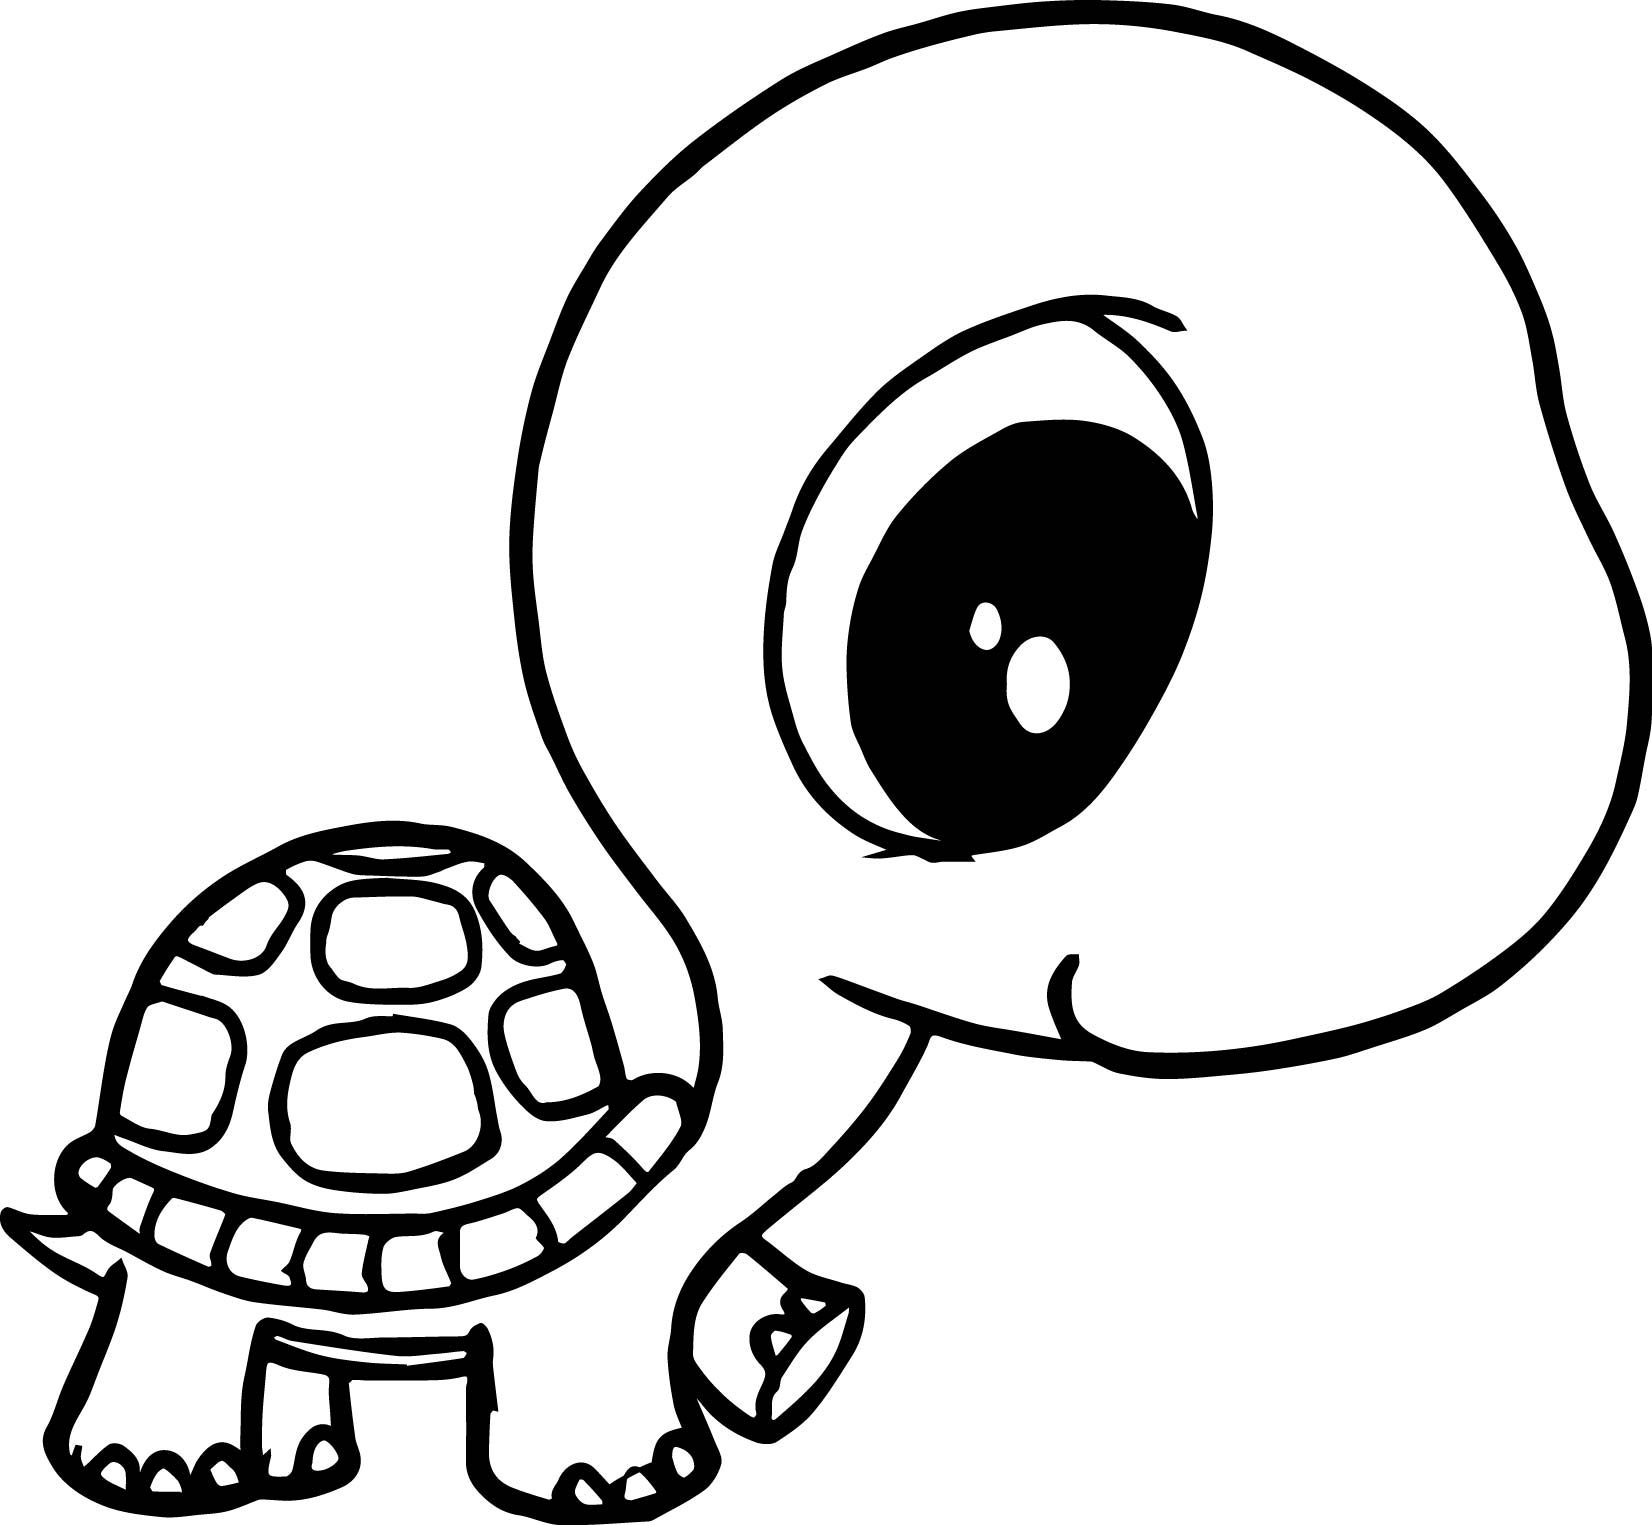 21+ Best Photo of Turtle Coloring Pages